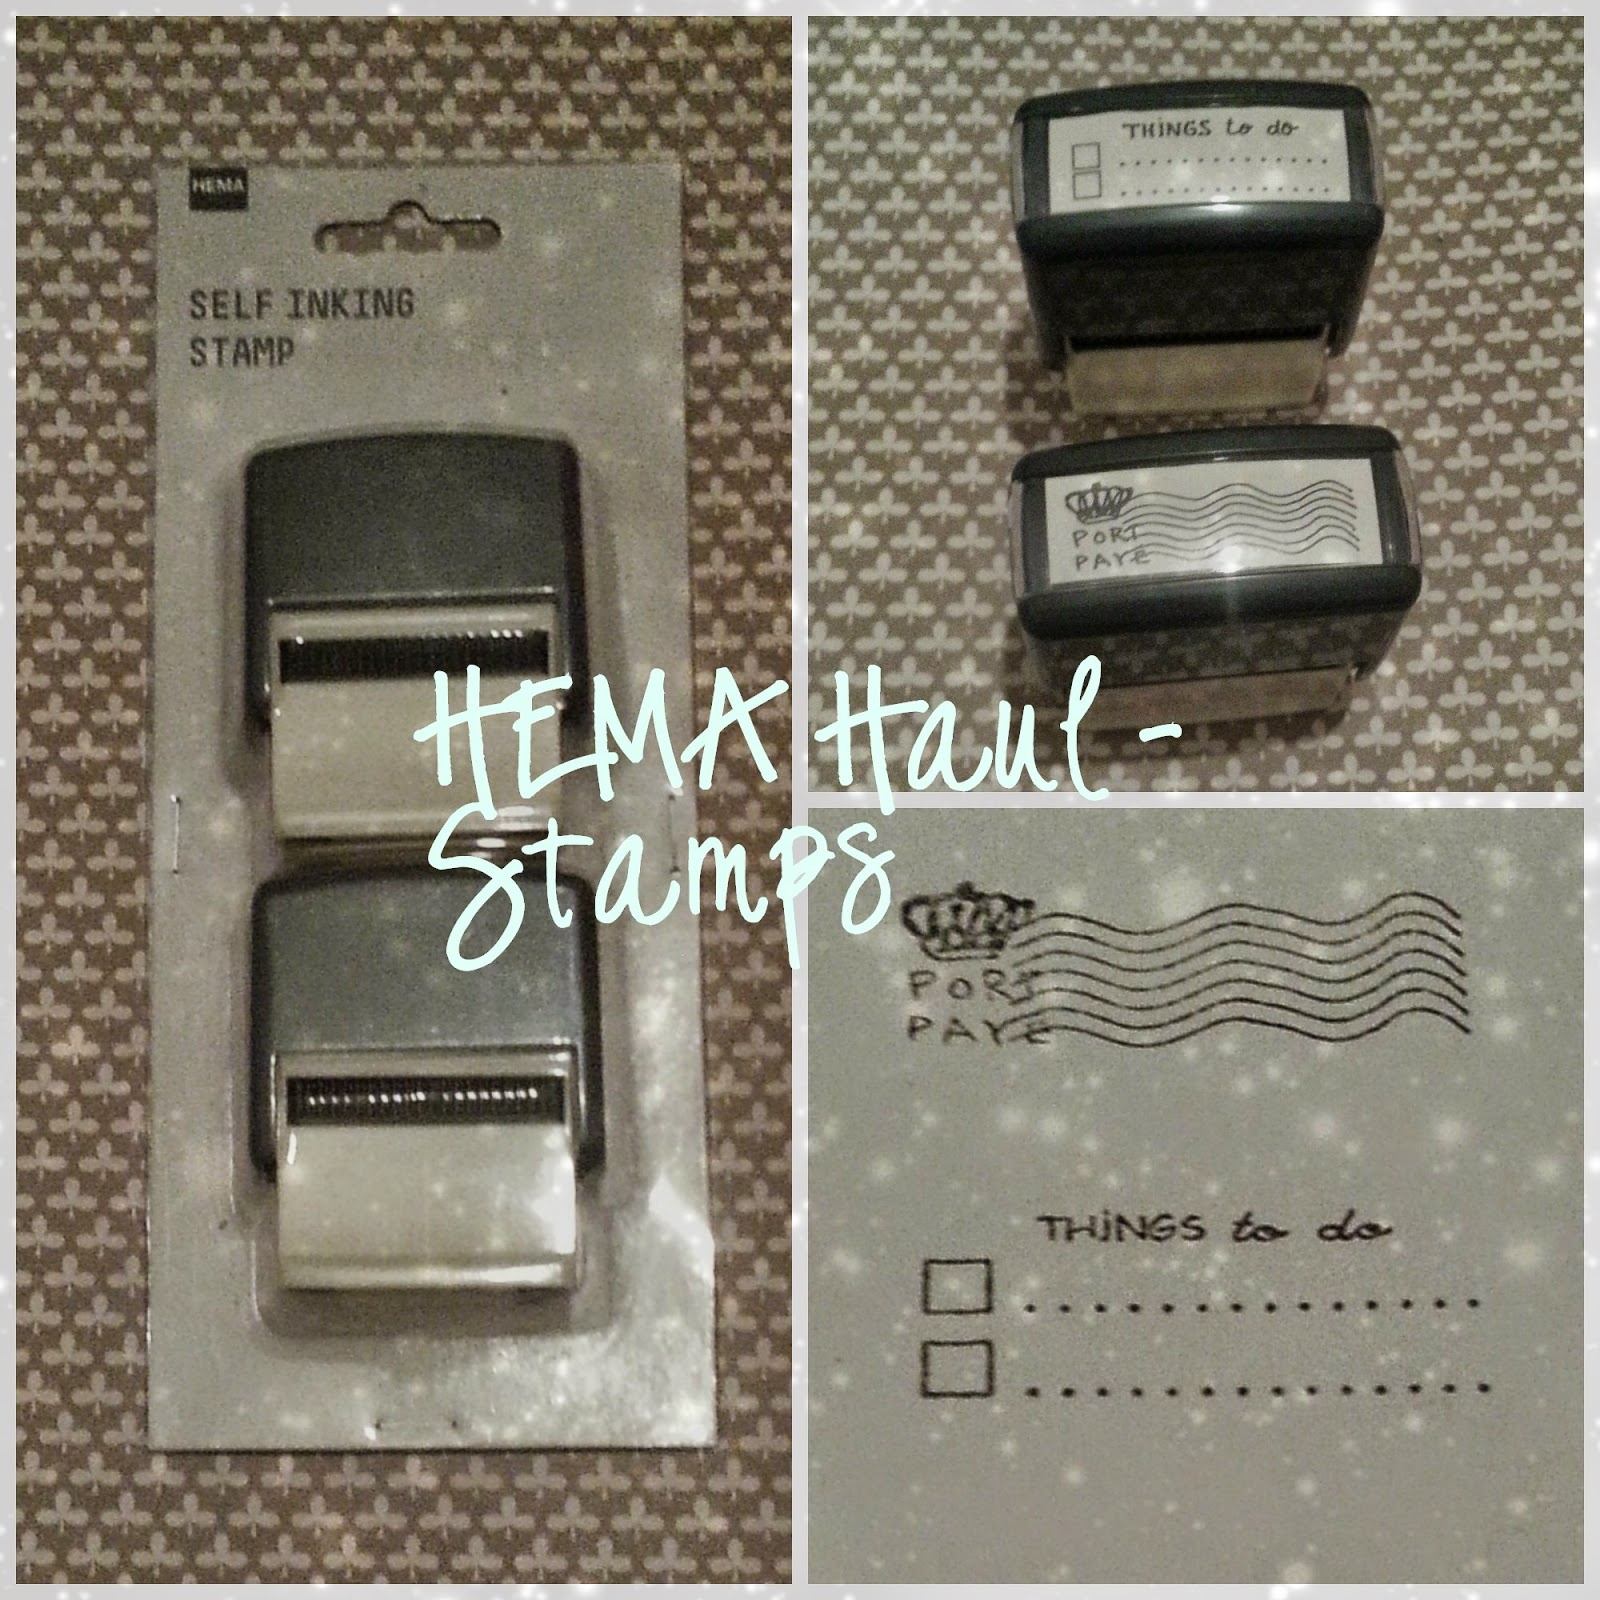 HEMA self inking stamps